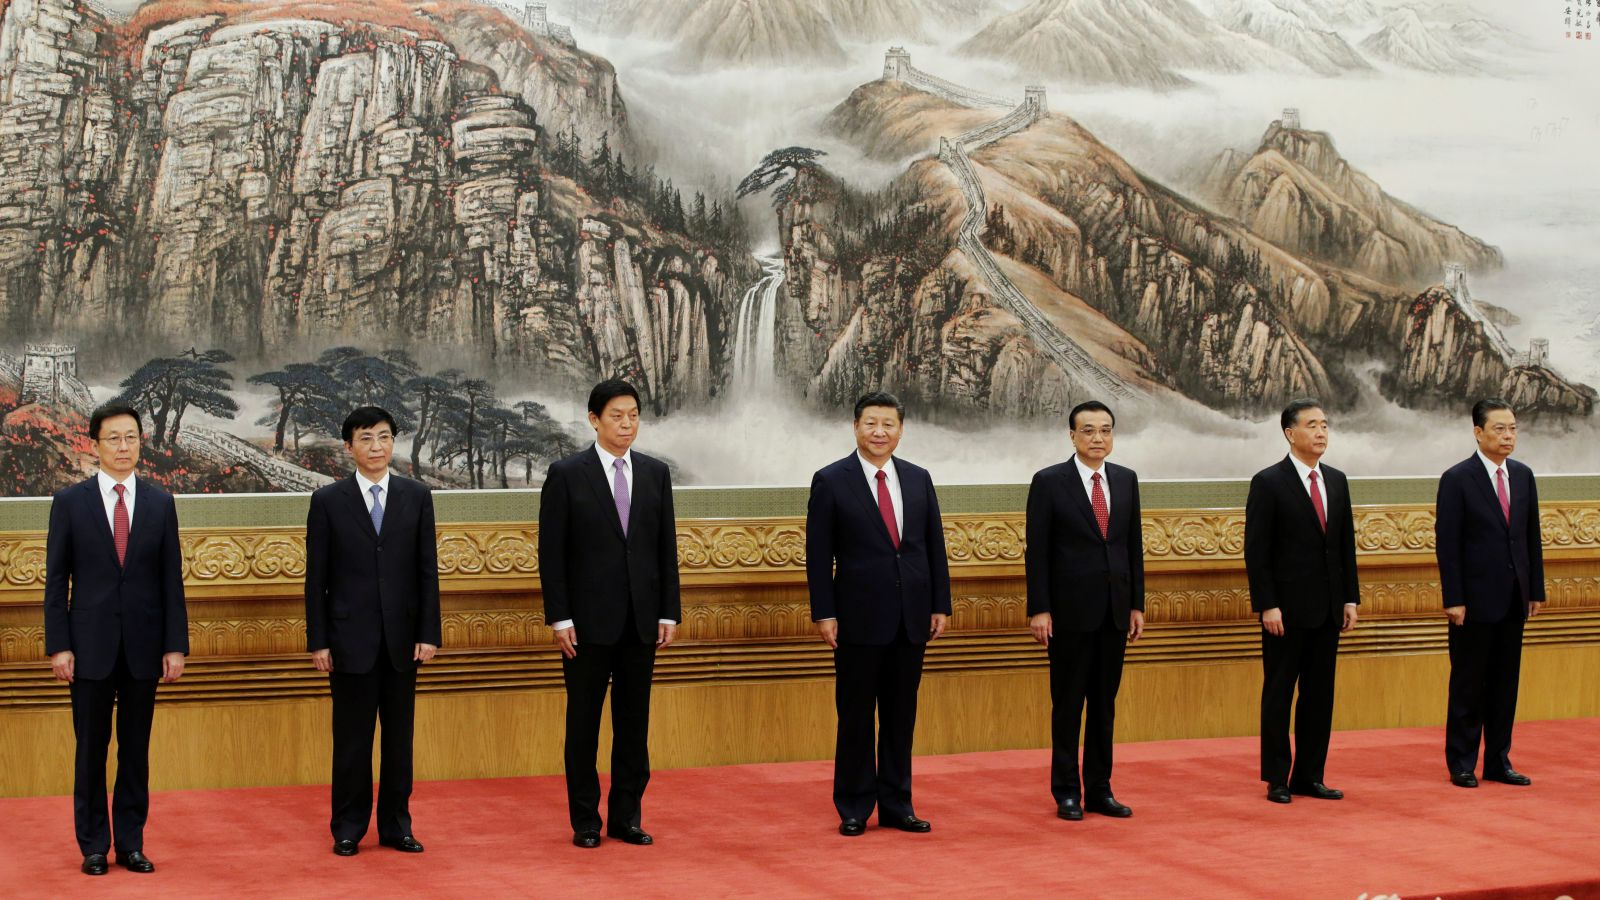 China Panics the World But Is President Xi Jinping Grabbing Powers for Himself Or the System?